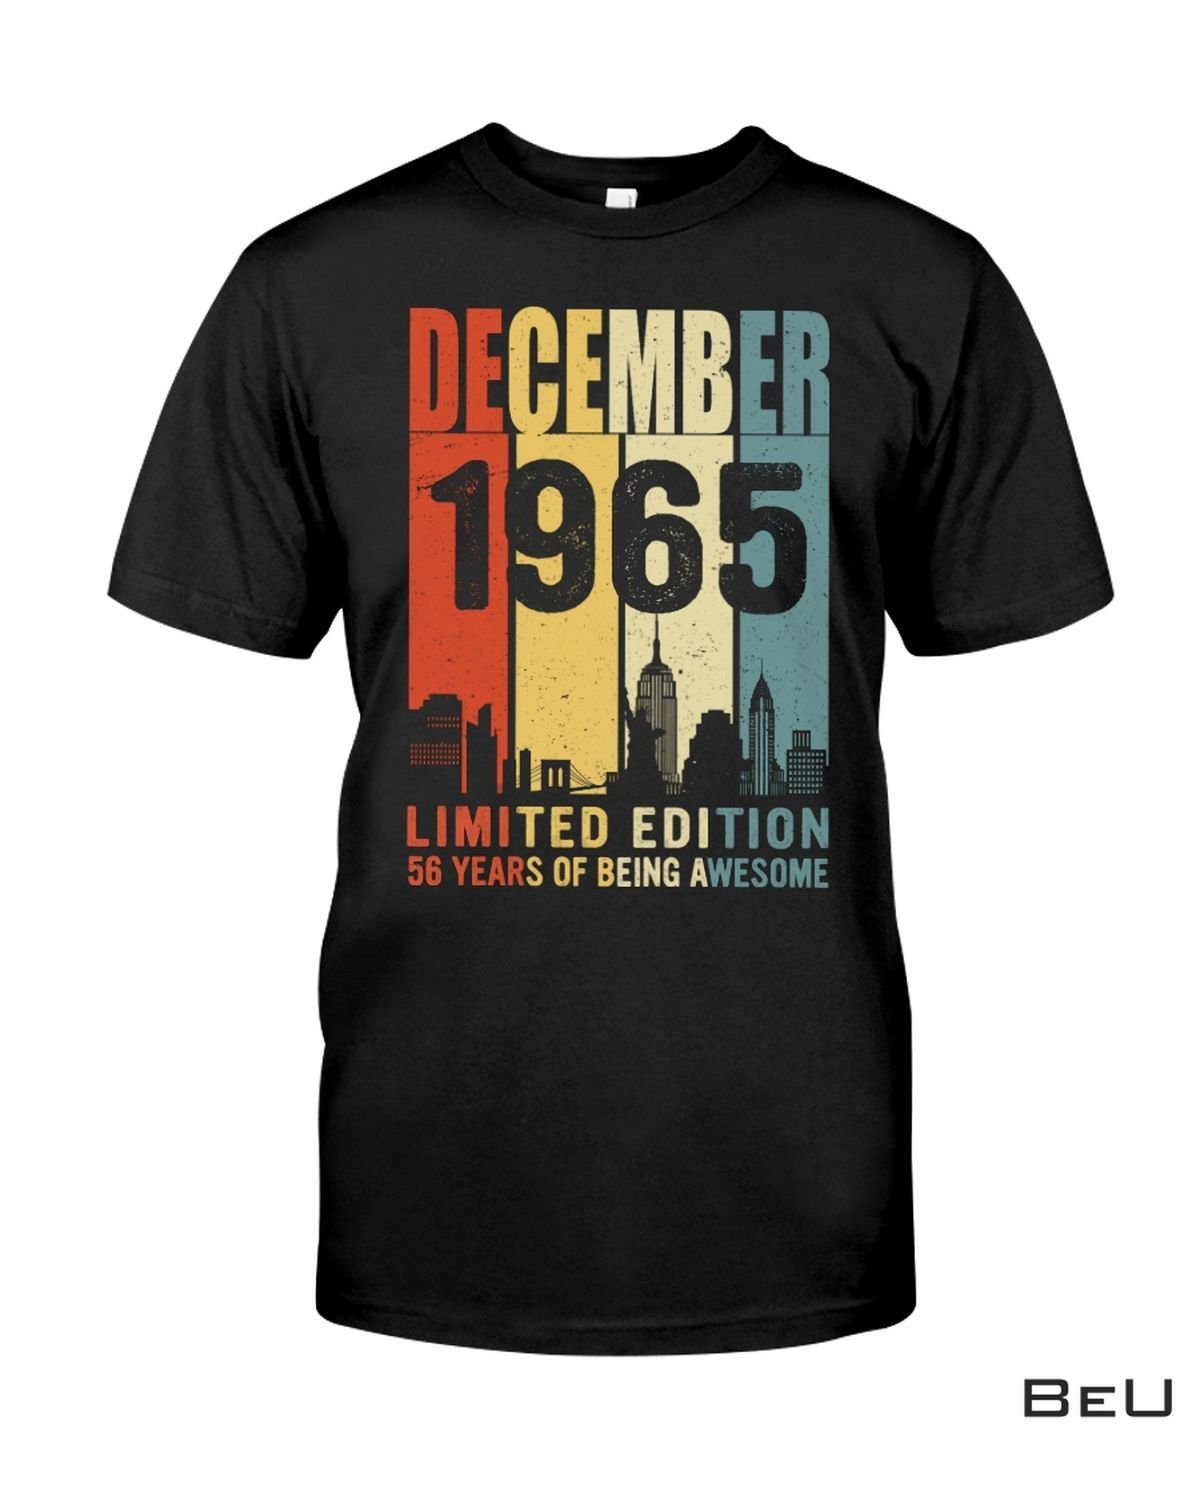 December 1965 Limited Edition Shirt, hoodie